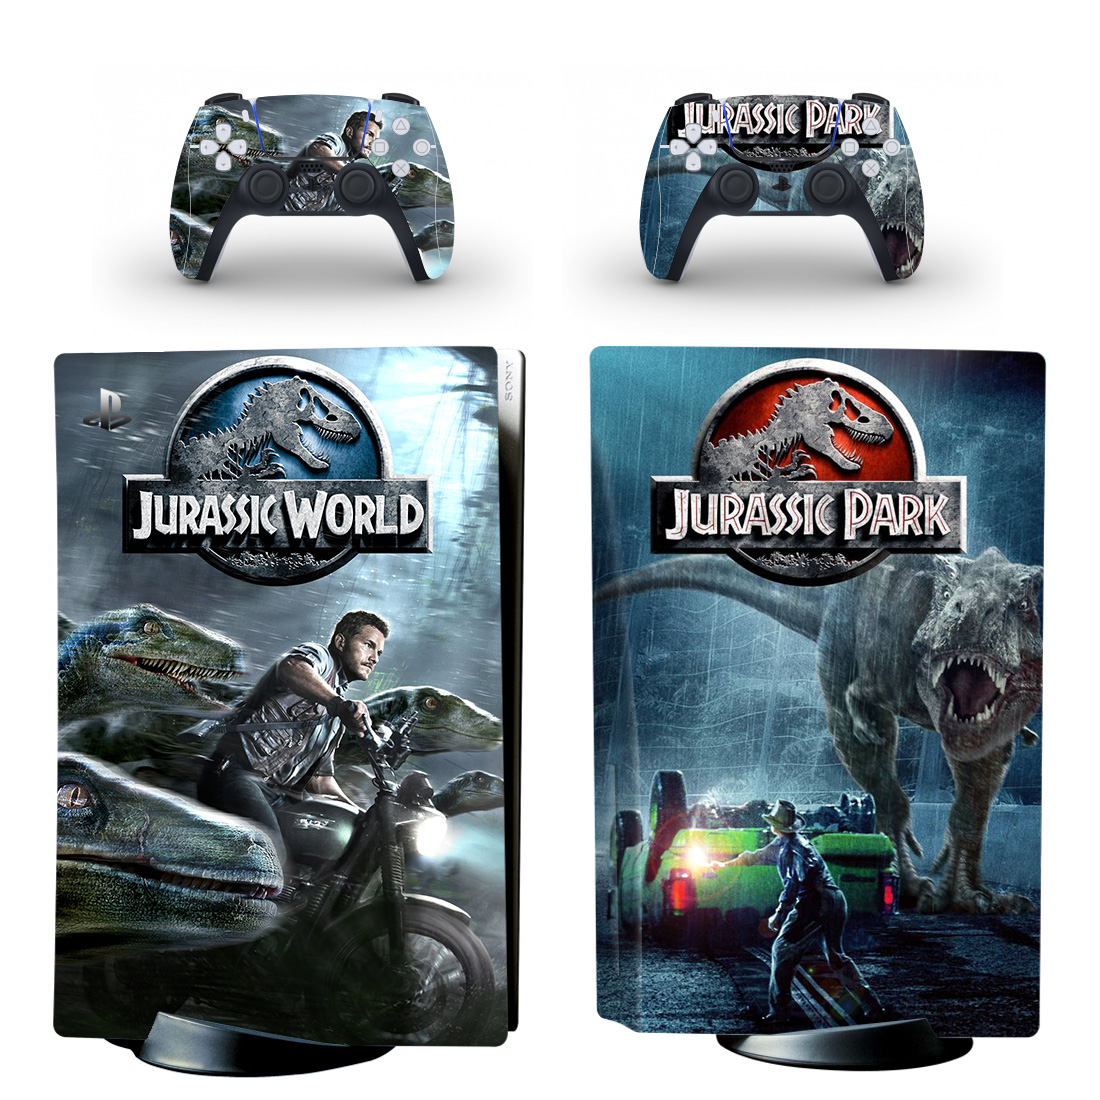 Jurassic Park Skin Sticker For PS5 Skin And Controllers